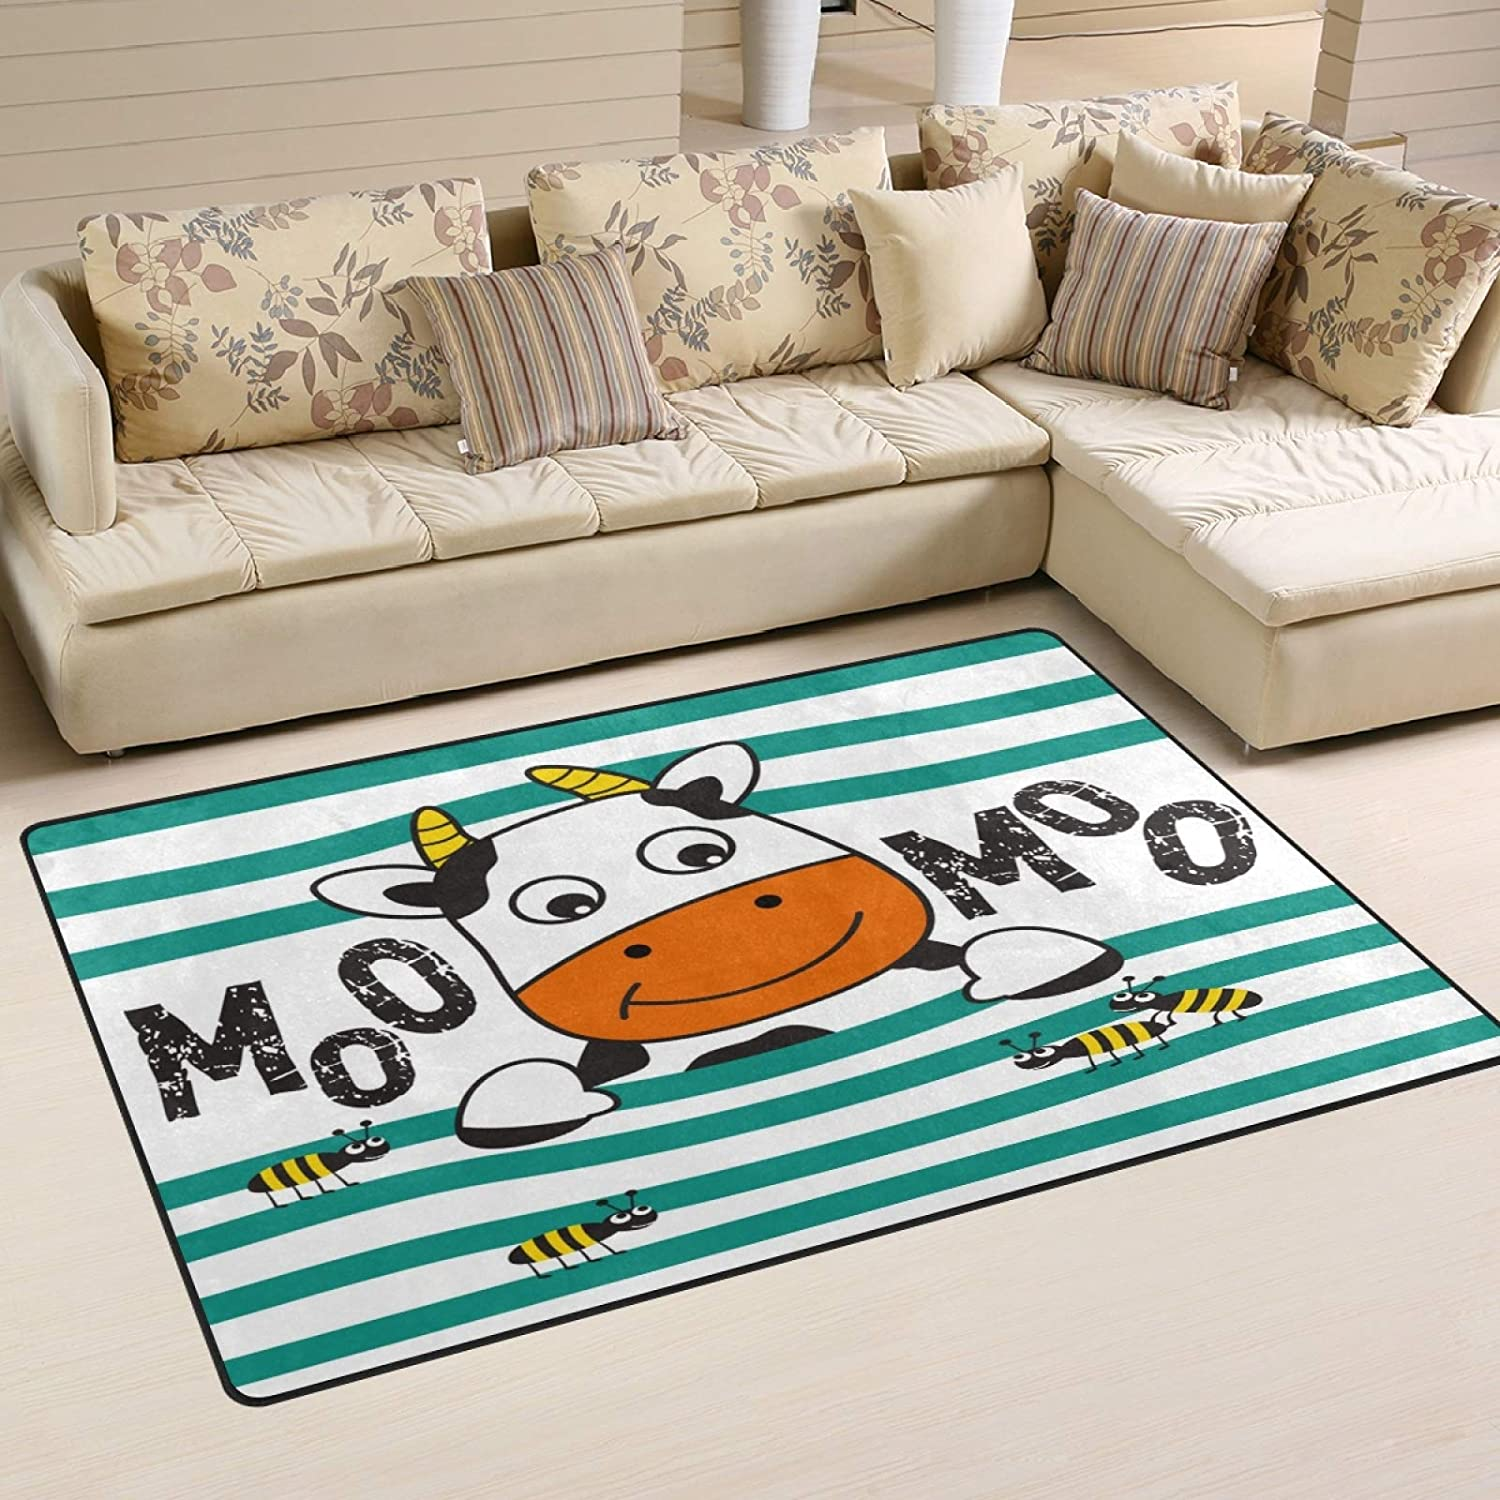 ALAZA Cow Playing with Ant Funny Animal Cartoon Non Slip Area Rug 2 x 3, Modern Floor Rugs Mat for Living Room Bedroom Dinning Room Home Decor